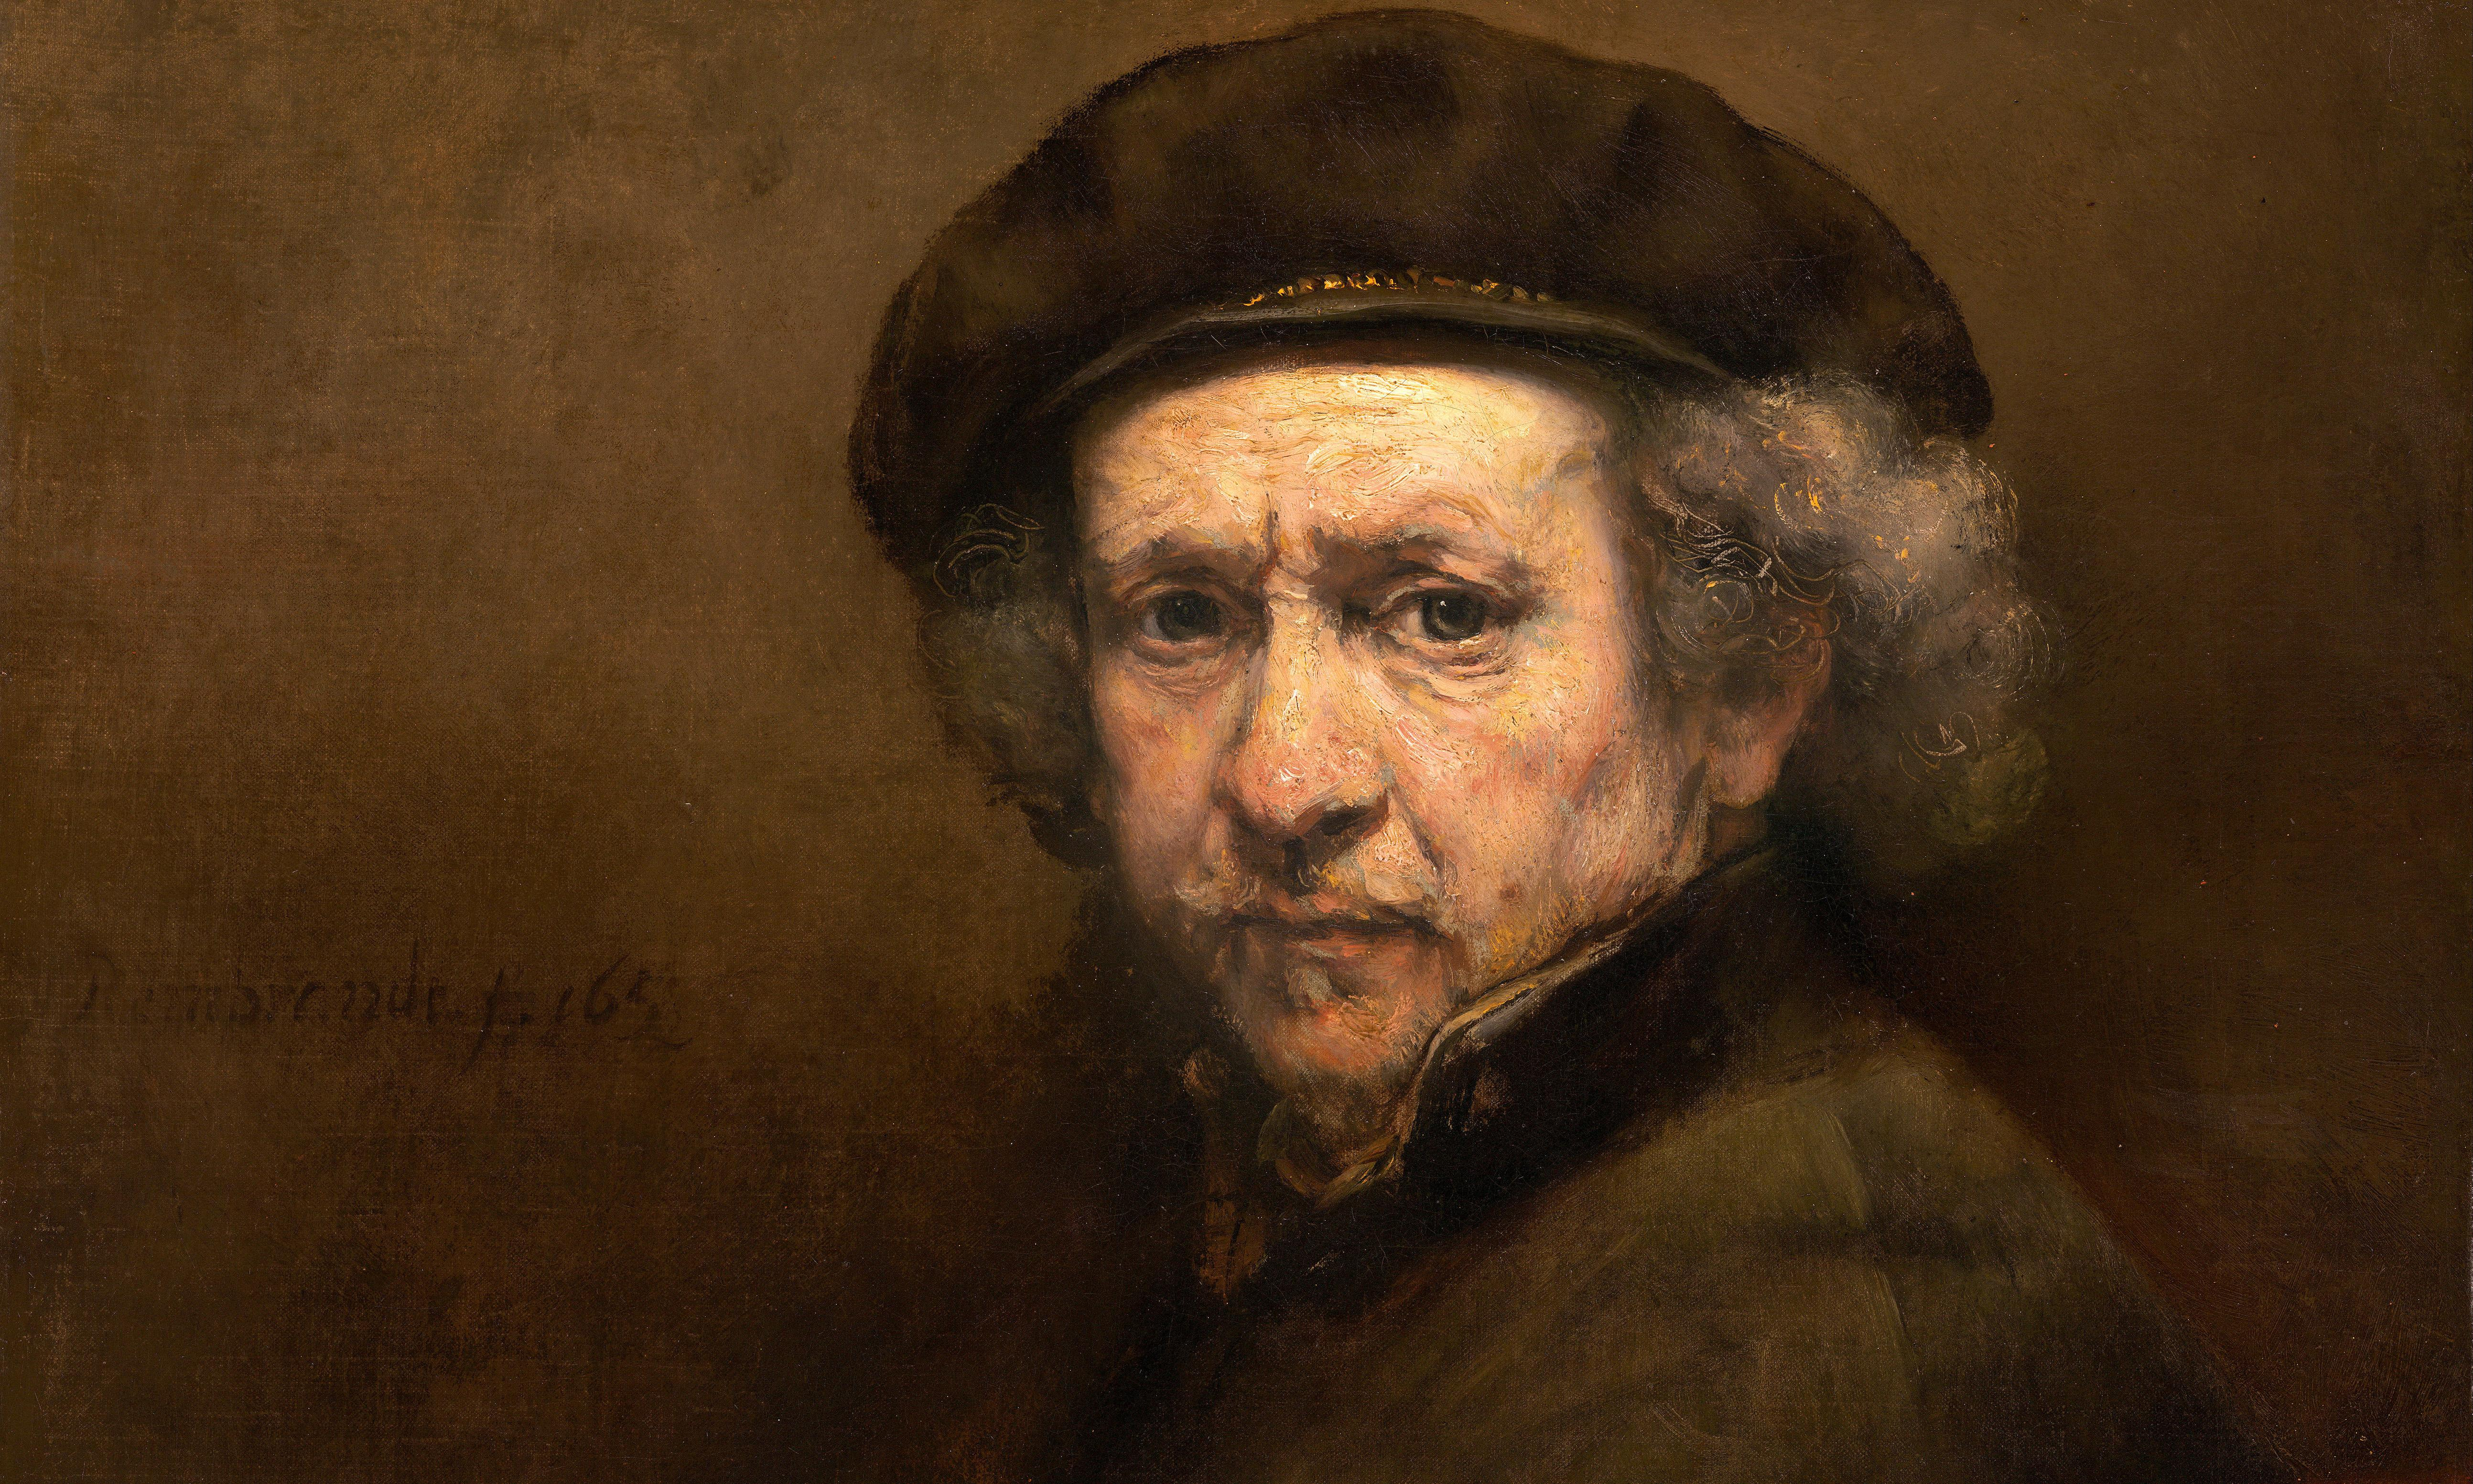 Rembrandt review – the life, loves and tragic end of the master painter